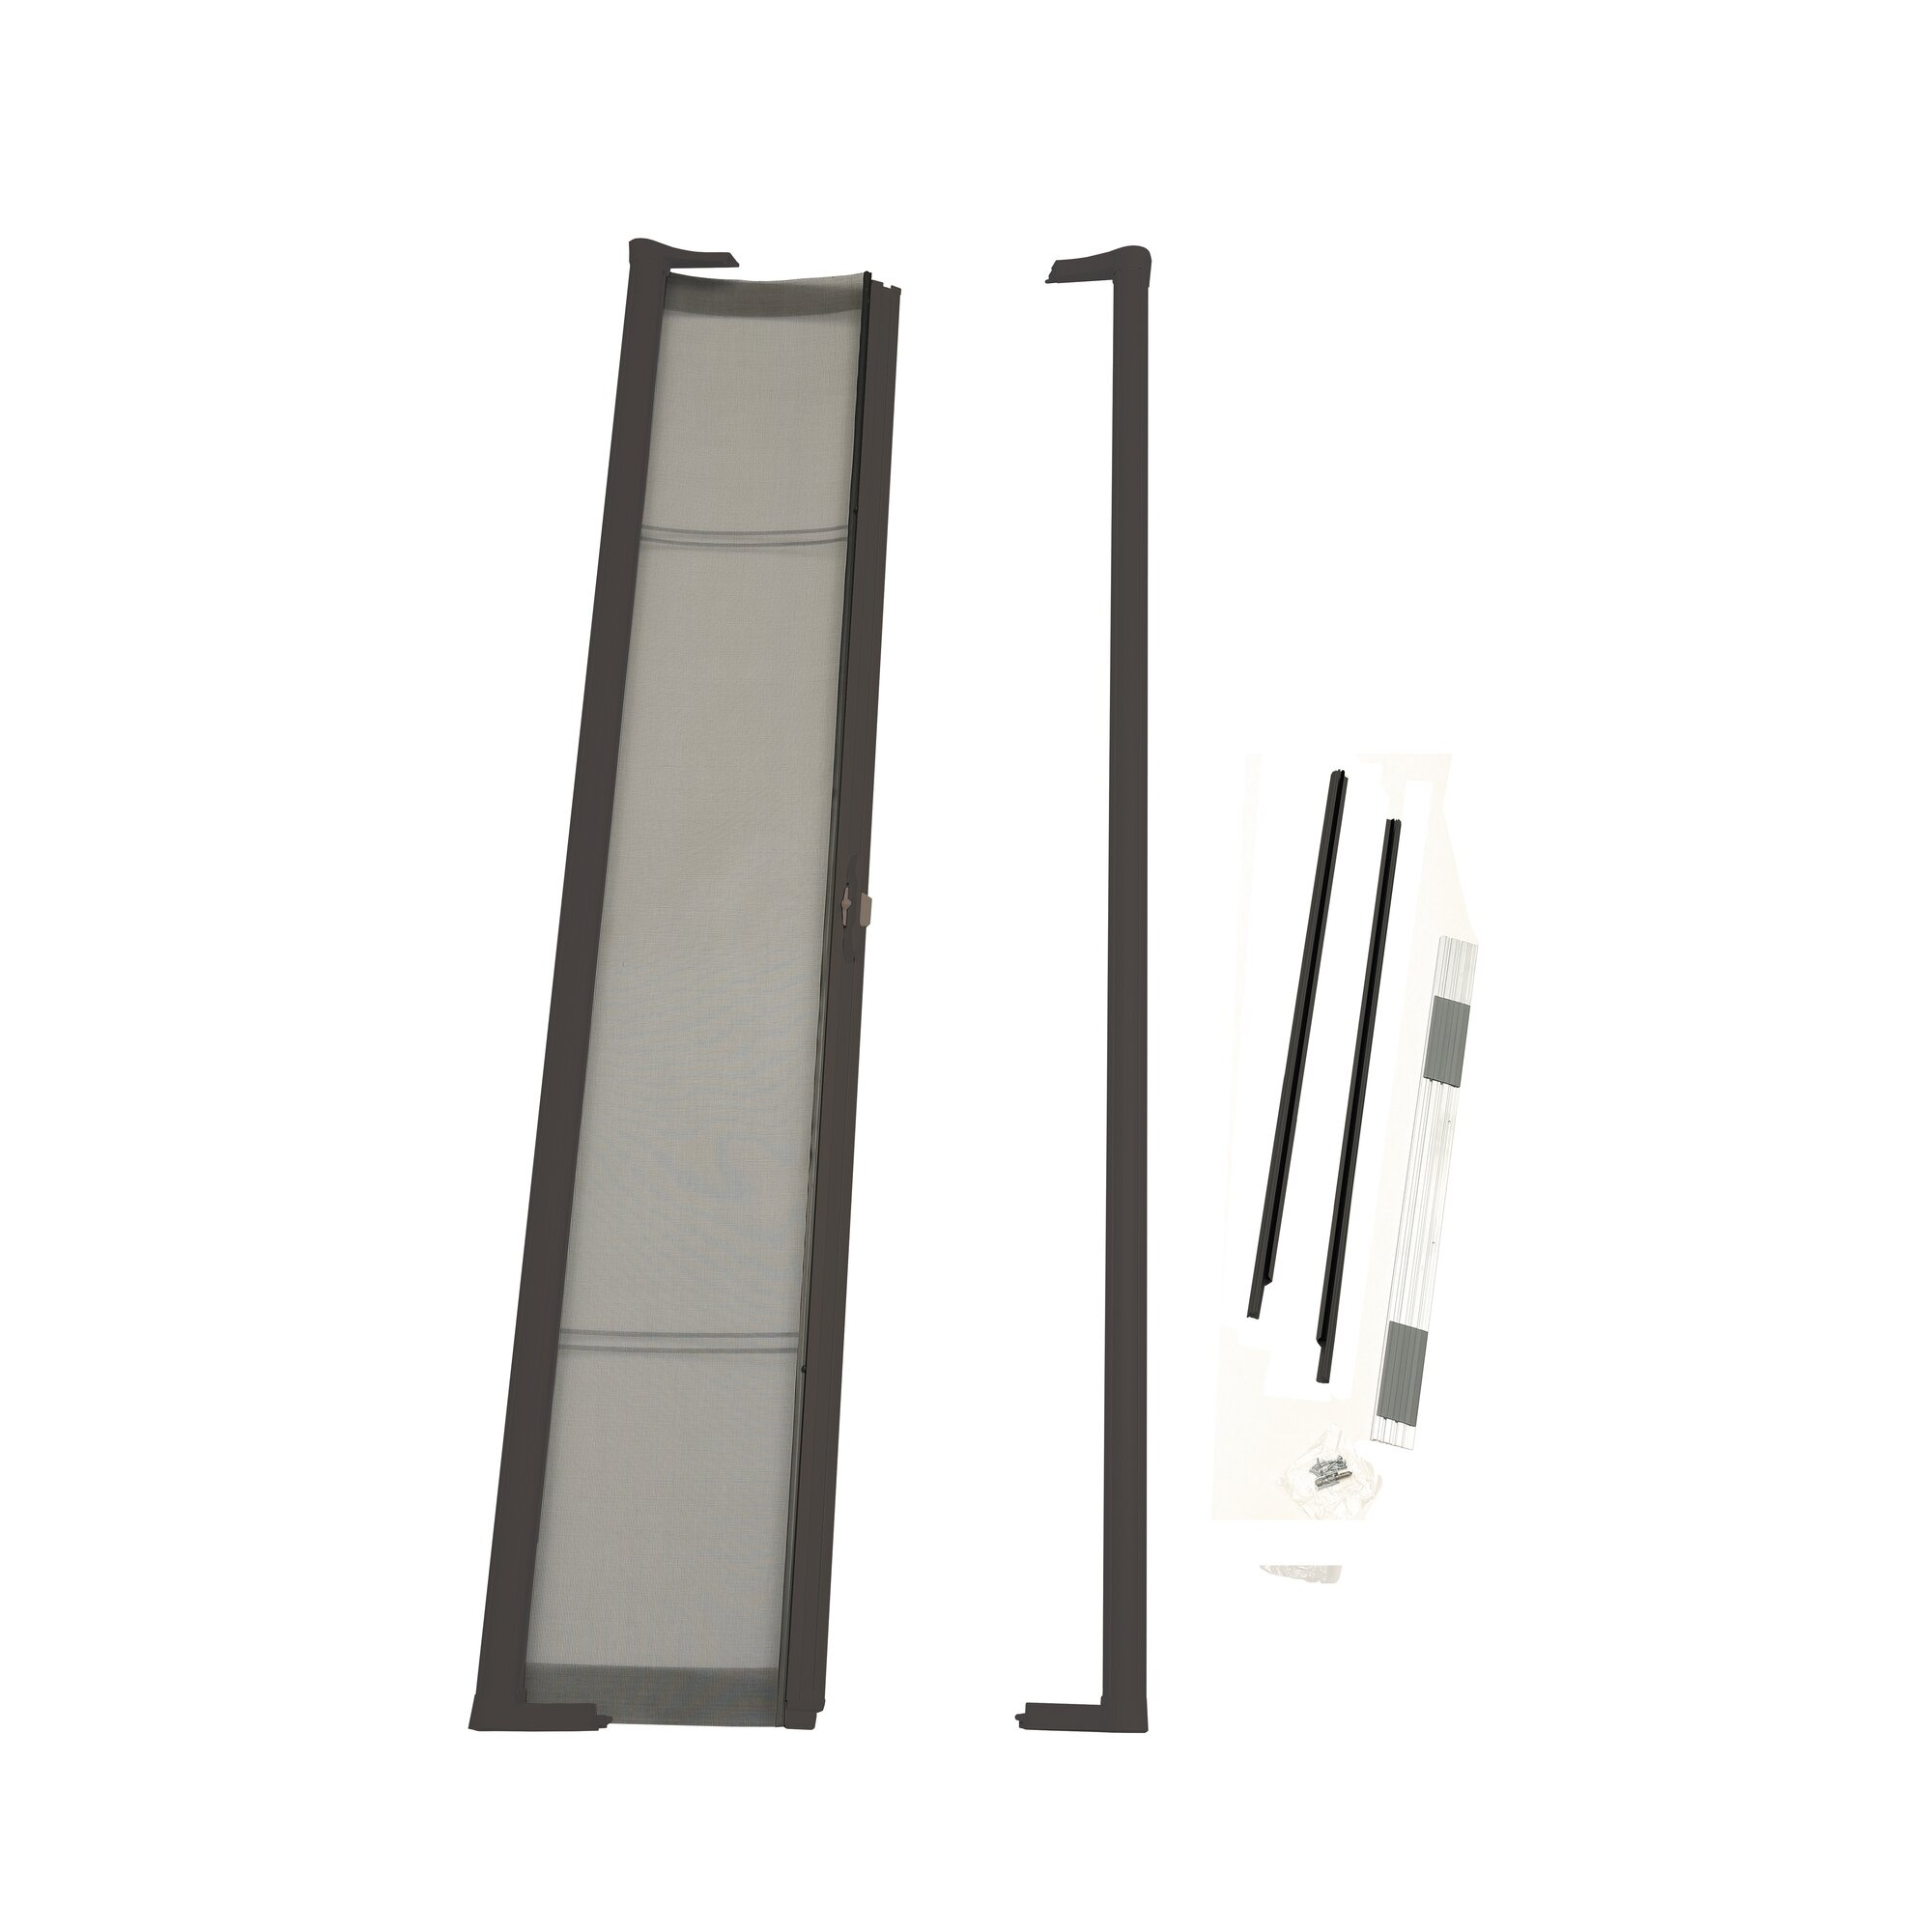 Odl brisa retractable screen door reviews wayfair for 48 inch retractable screen door